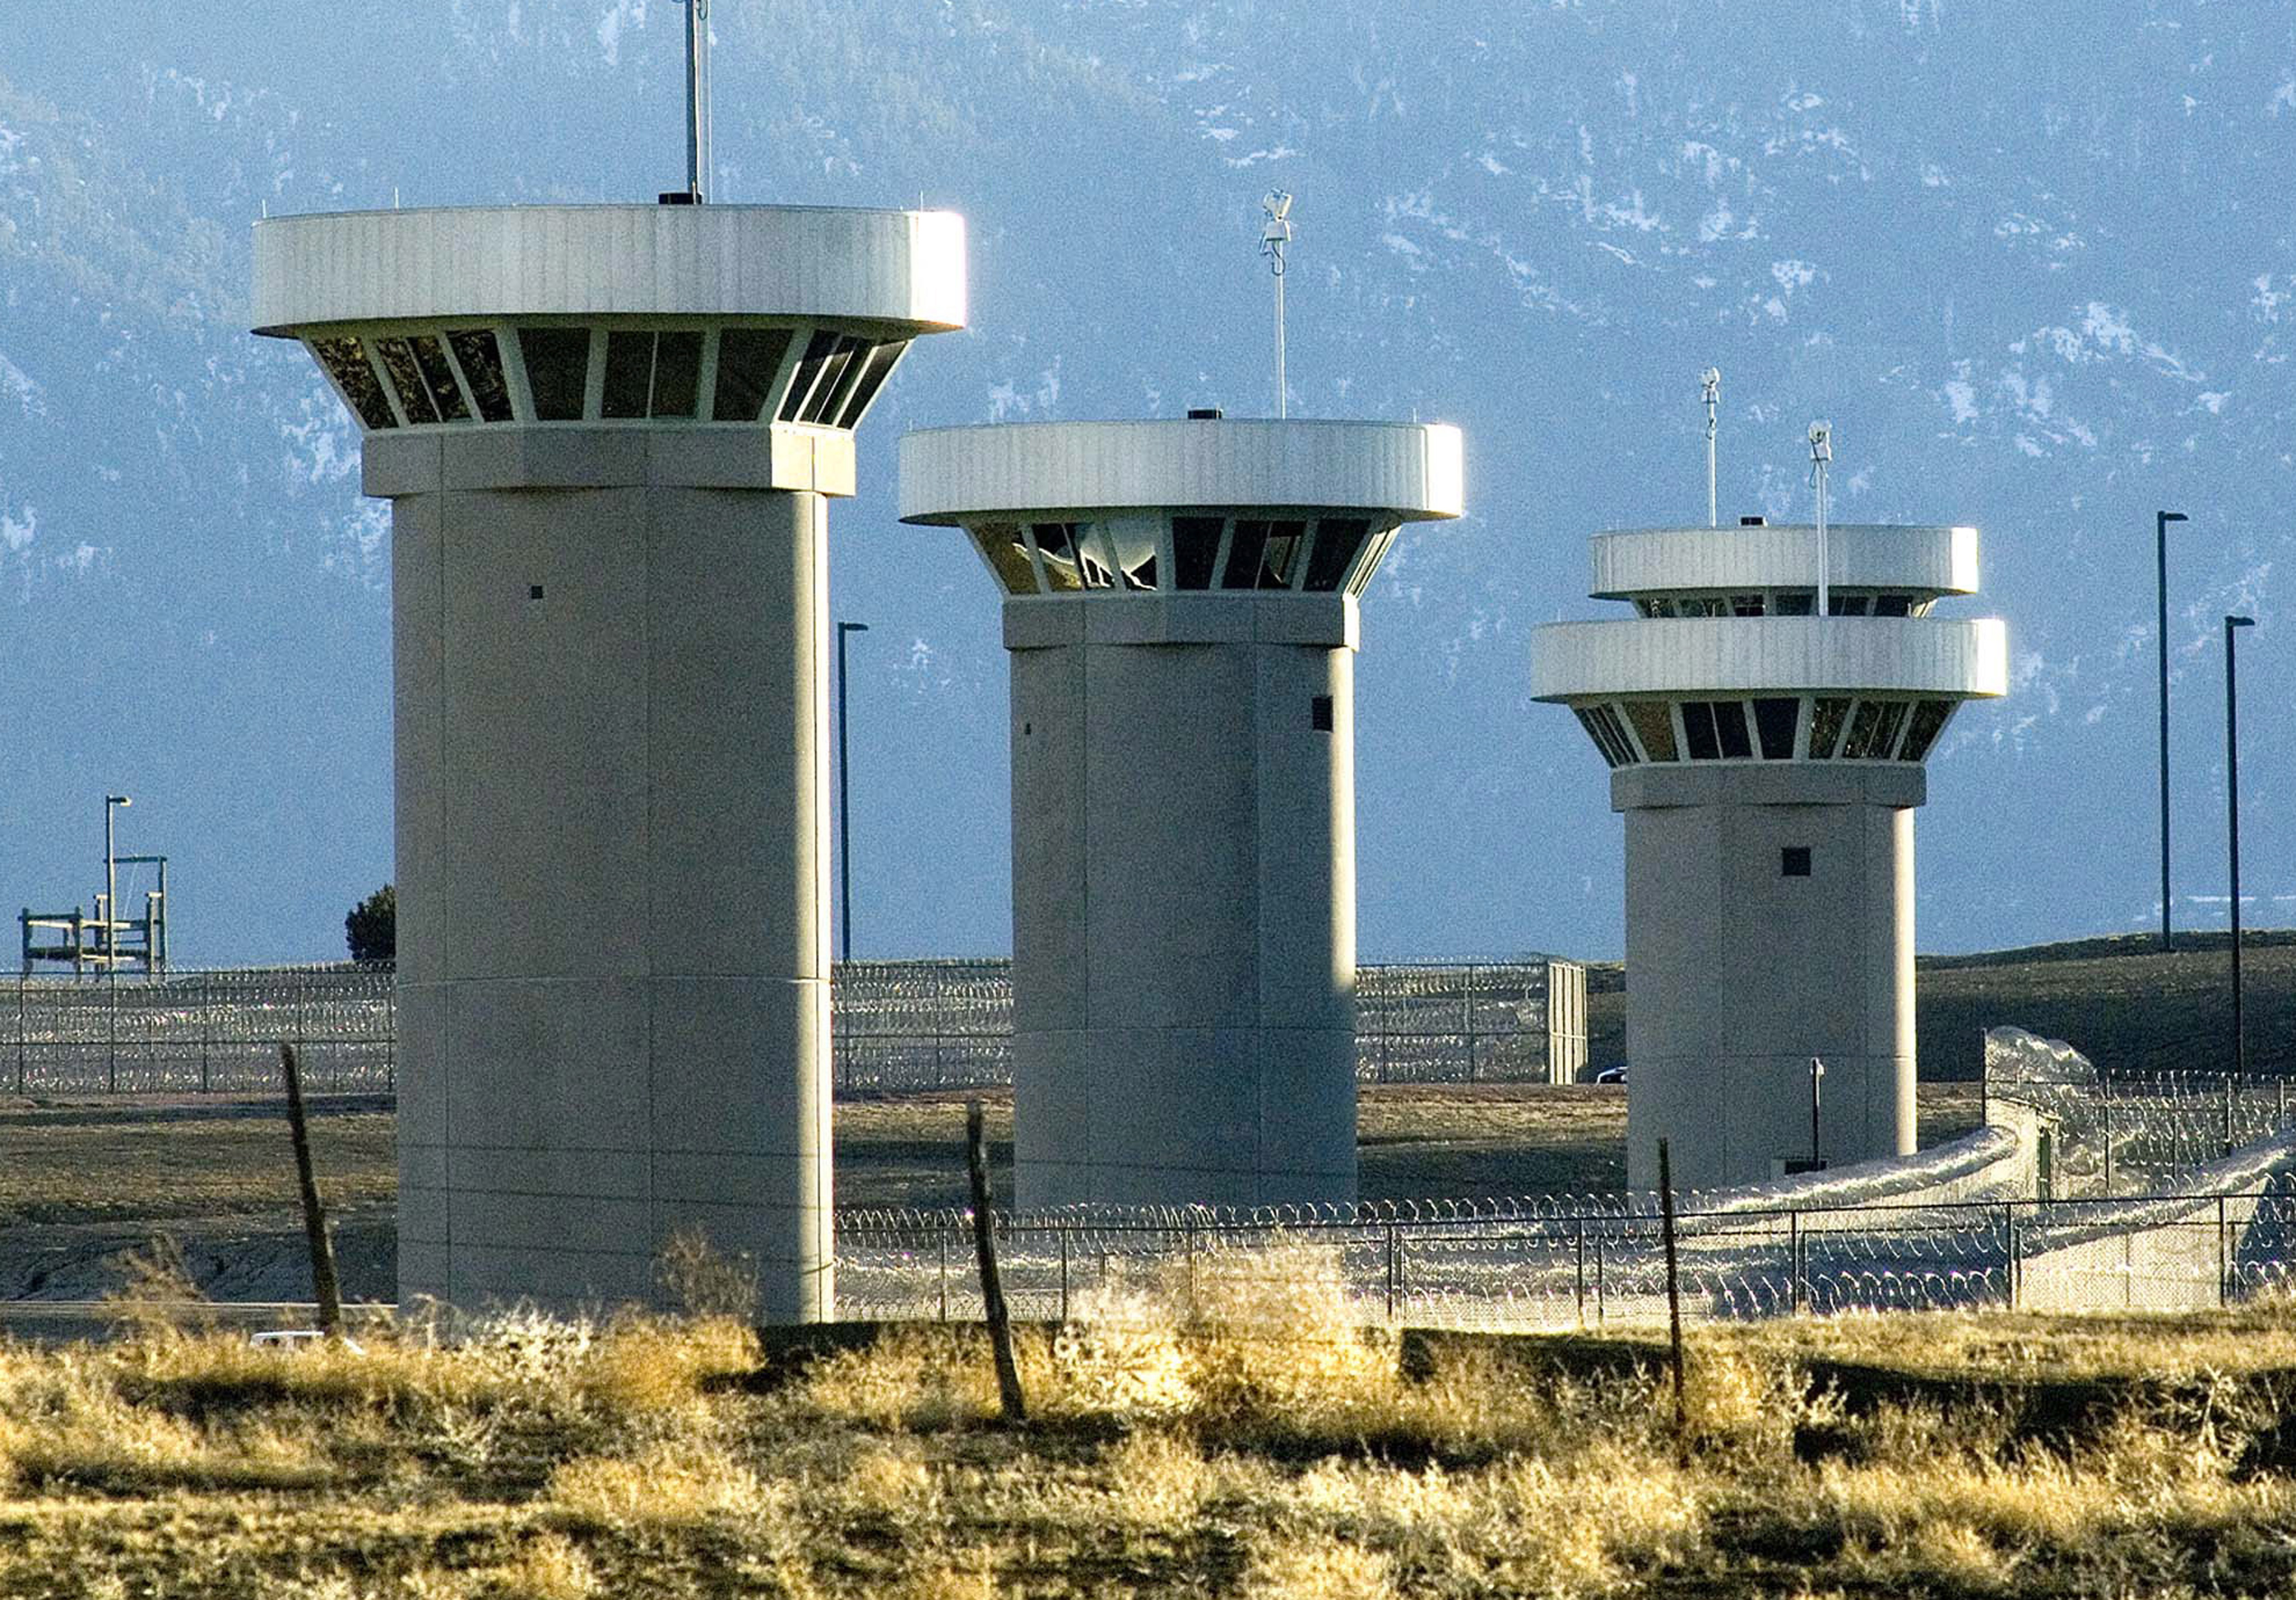 Will El Chapo escape prison again? Experts say unlikely if he heads to the  'Alcatraz of the Rockies' - National